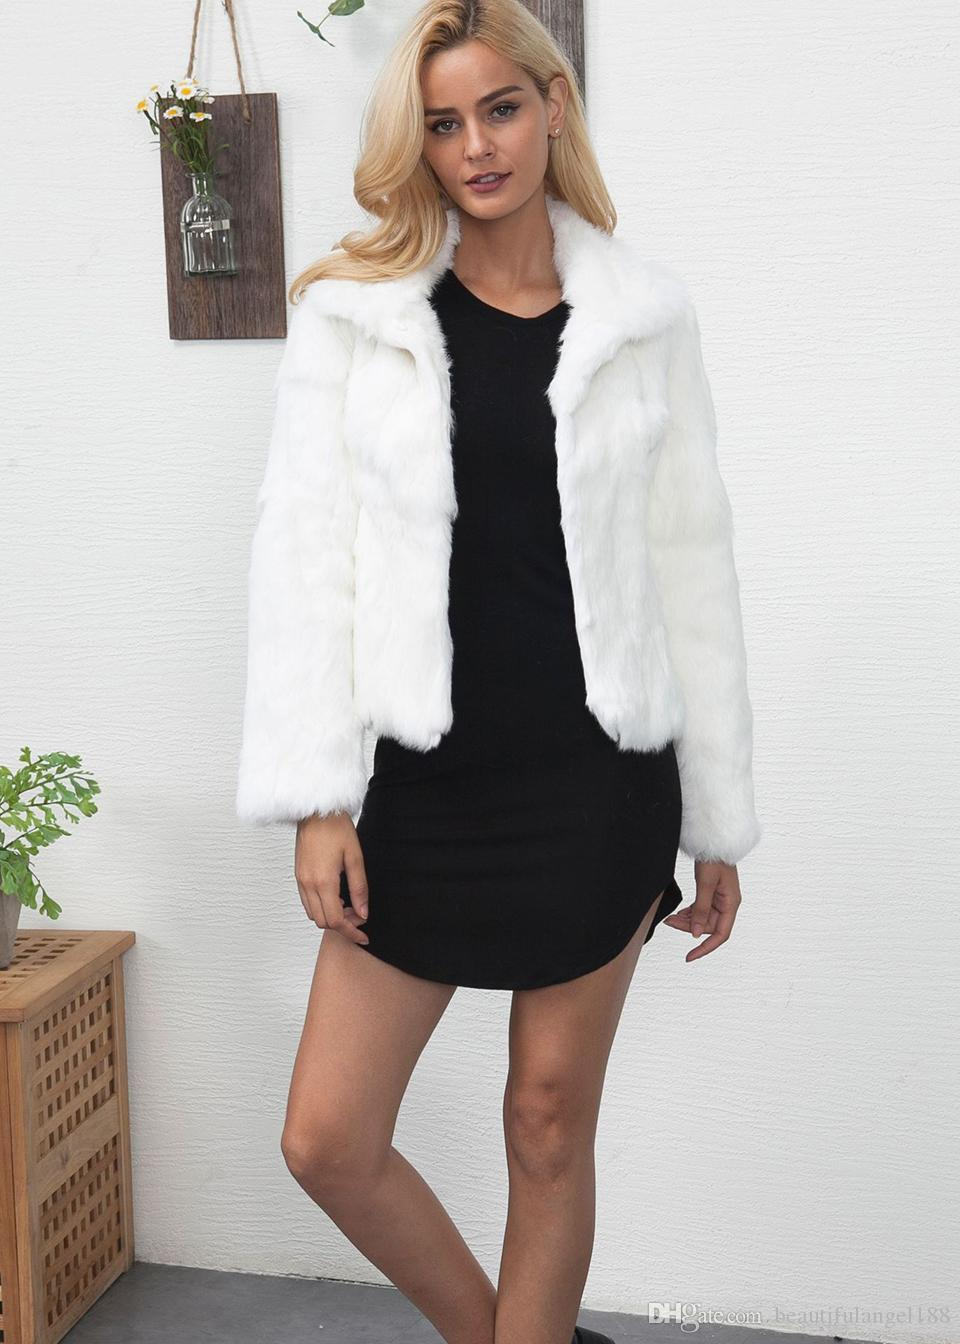 Ladies Imitation Fur Winter White short Jacket Clothes Beautiful Faux Fur Coats For Women Fashion Streetwear Outerwear